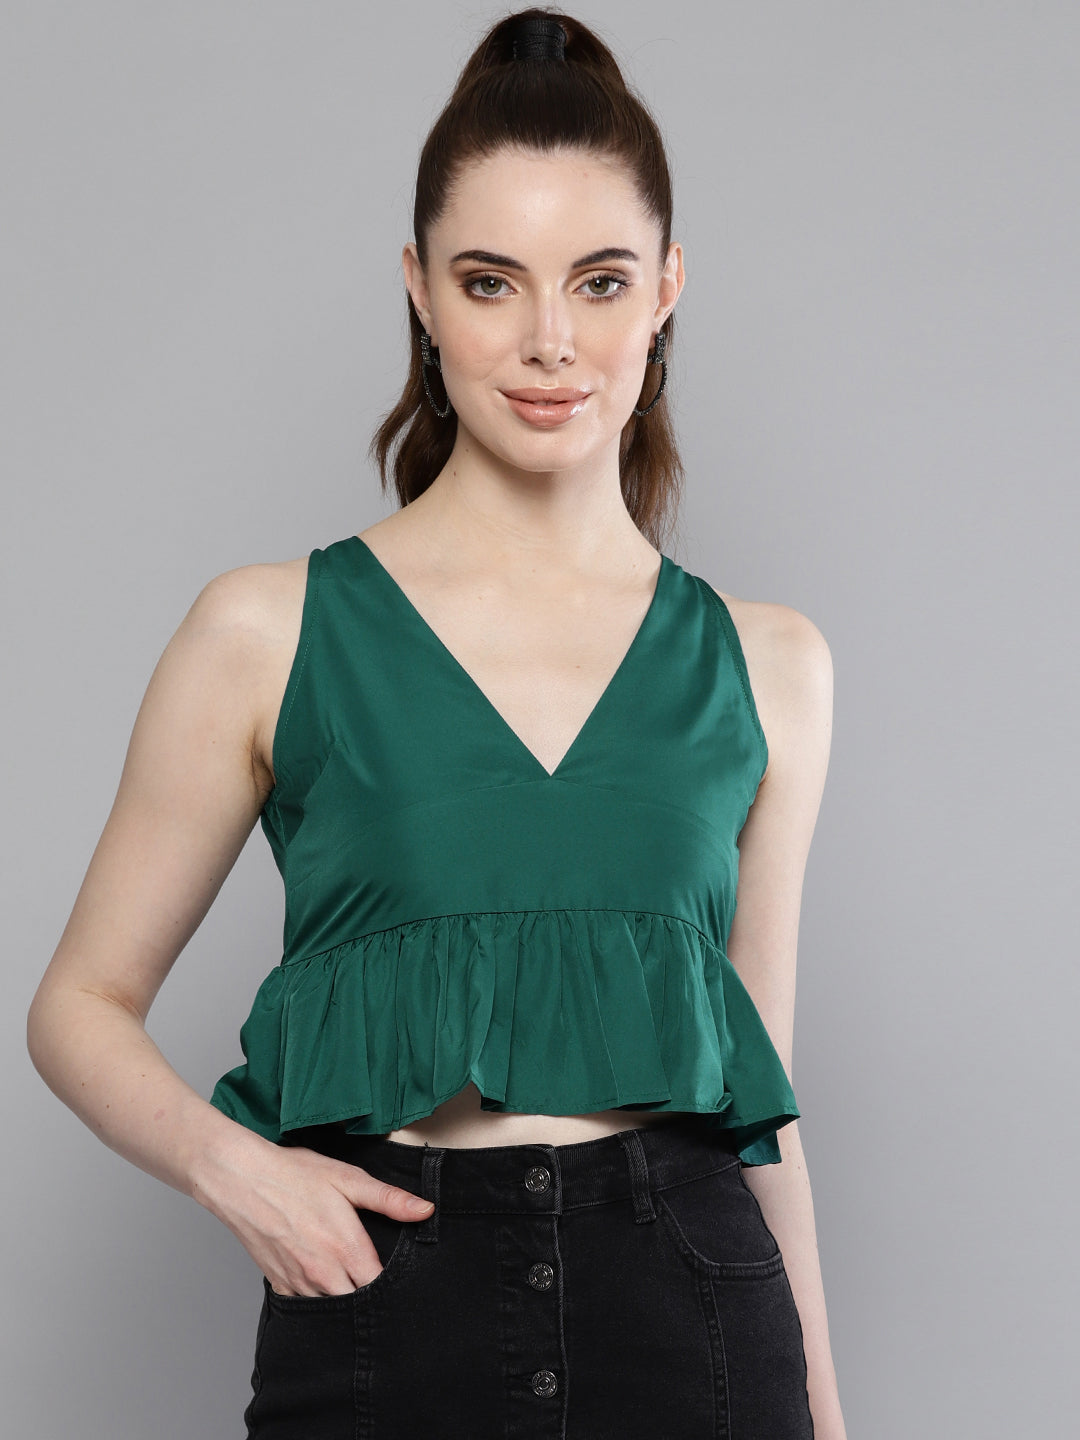 Solid Green Lush Top